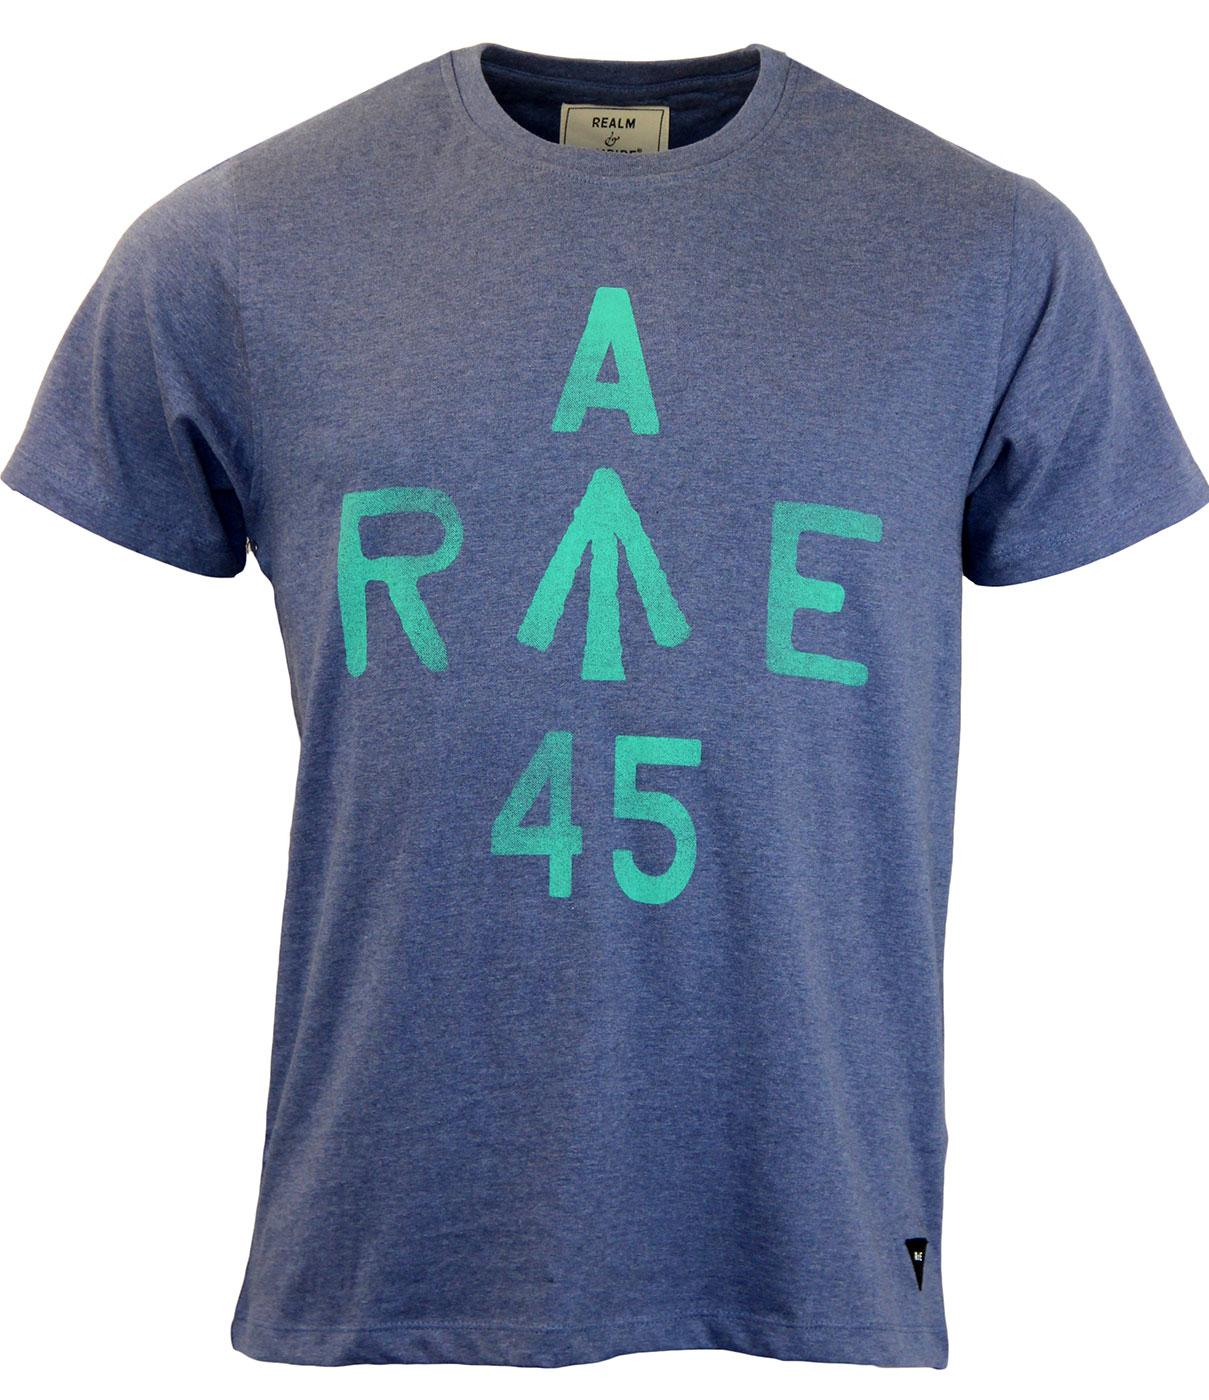 REALM & EMPIRE Rae Retro CC41 Stamp Style T-shirt